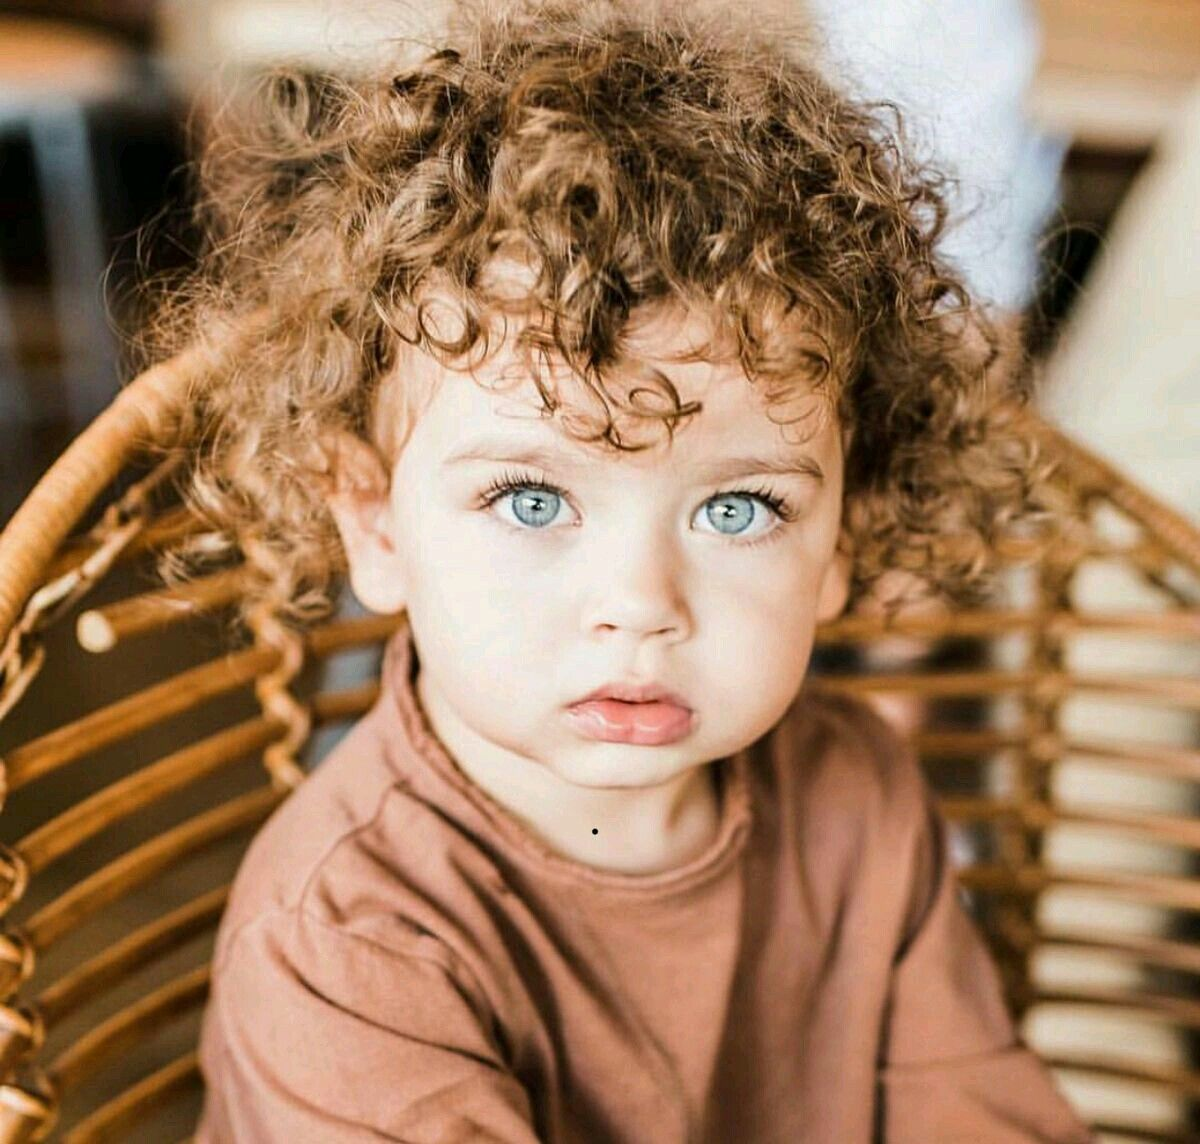 Curly Hair Baby Cute Kids Photography Curly Hair Baby Blue Eyed Baby